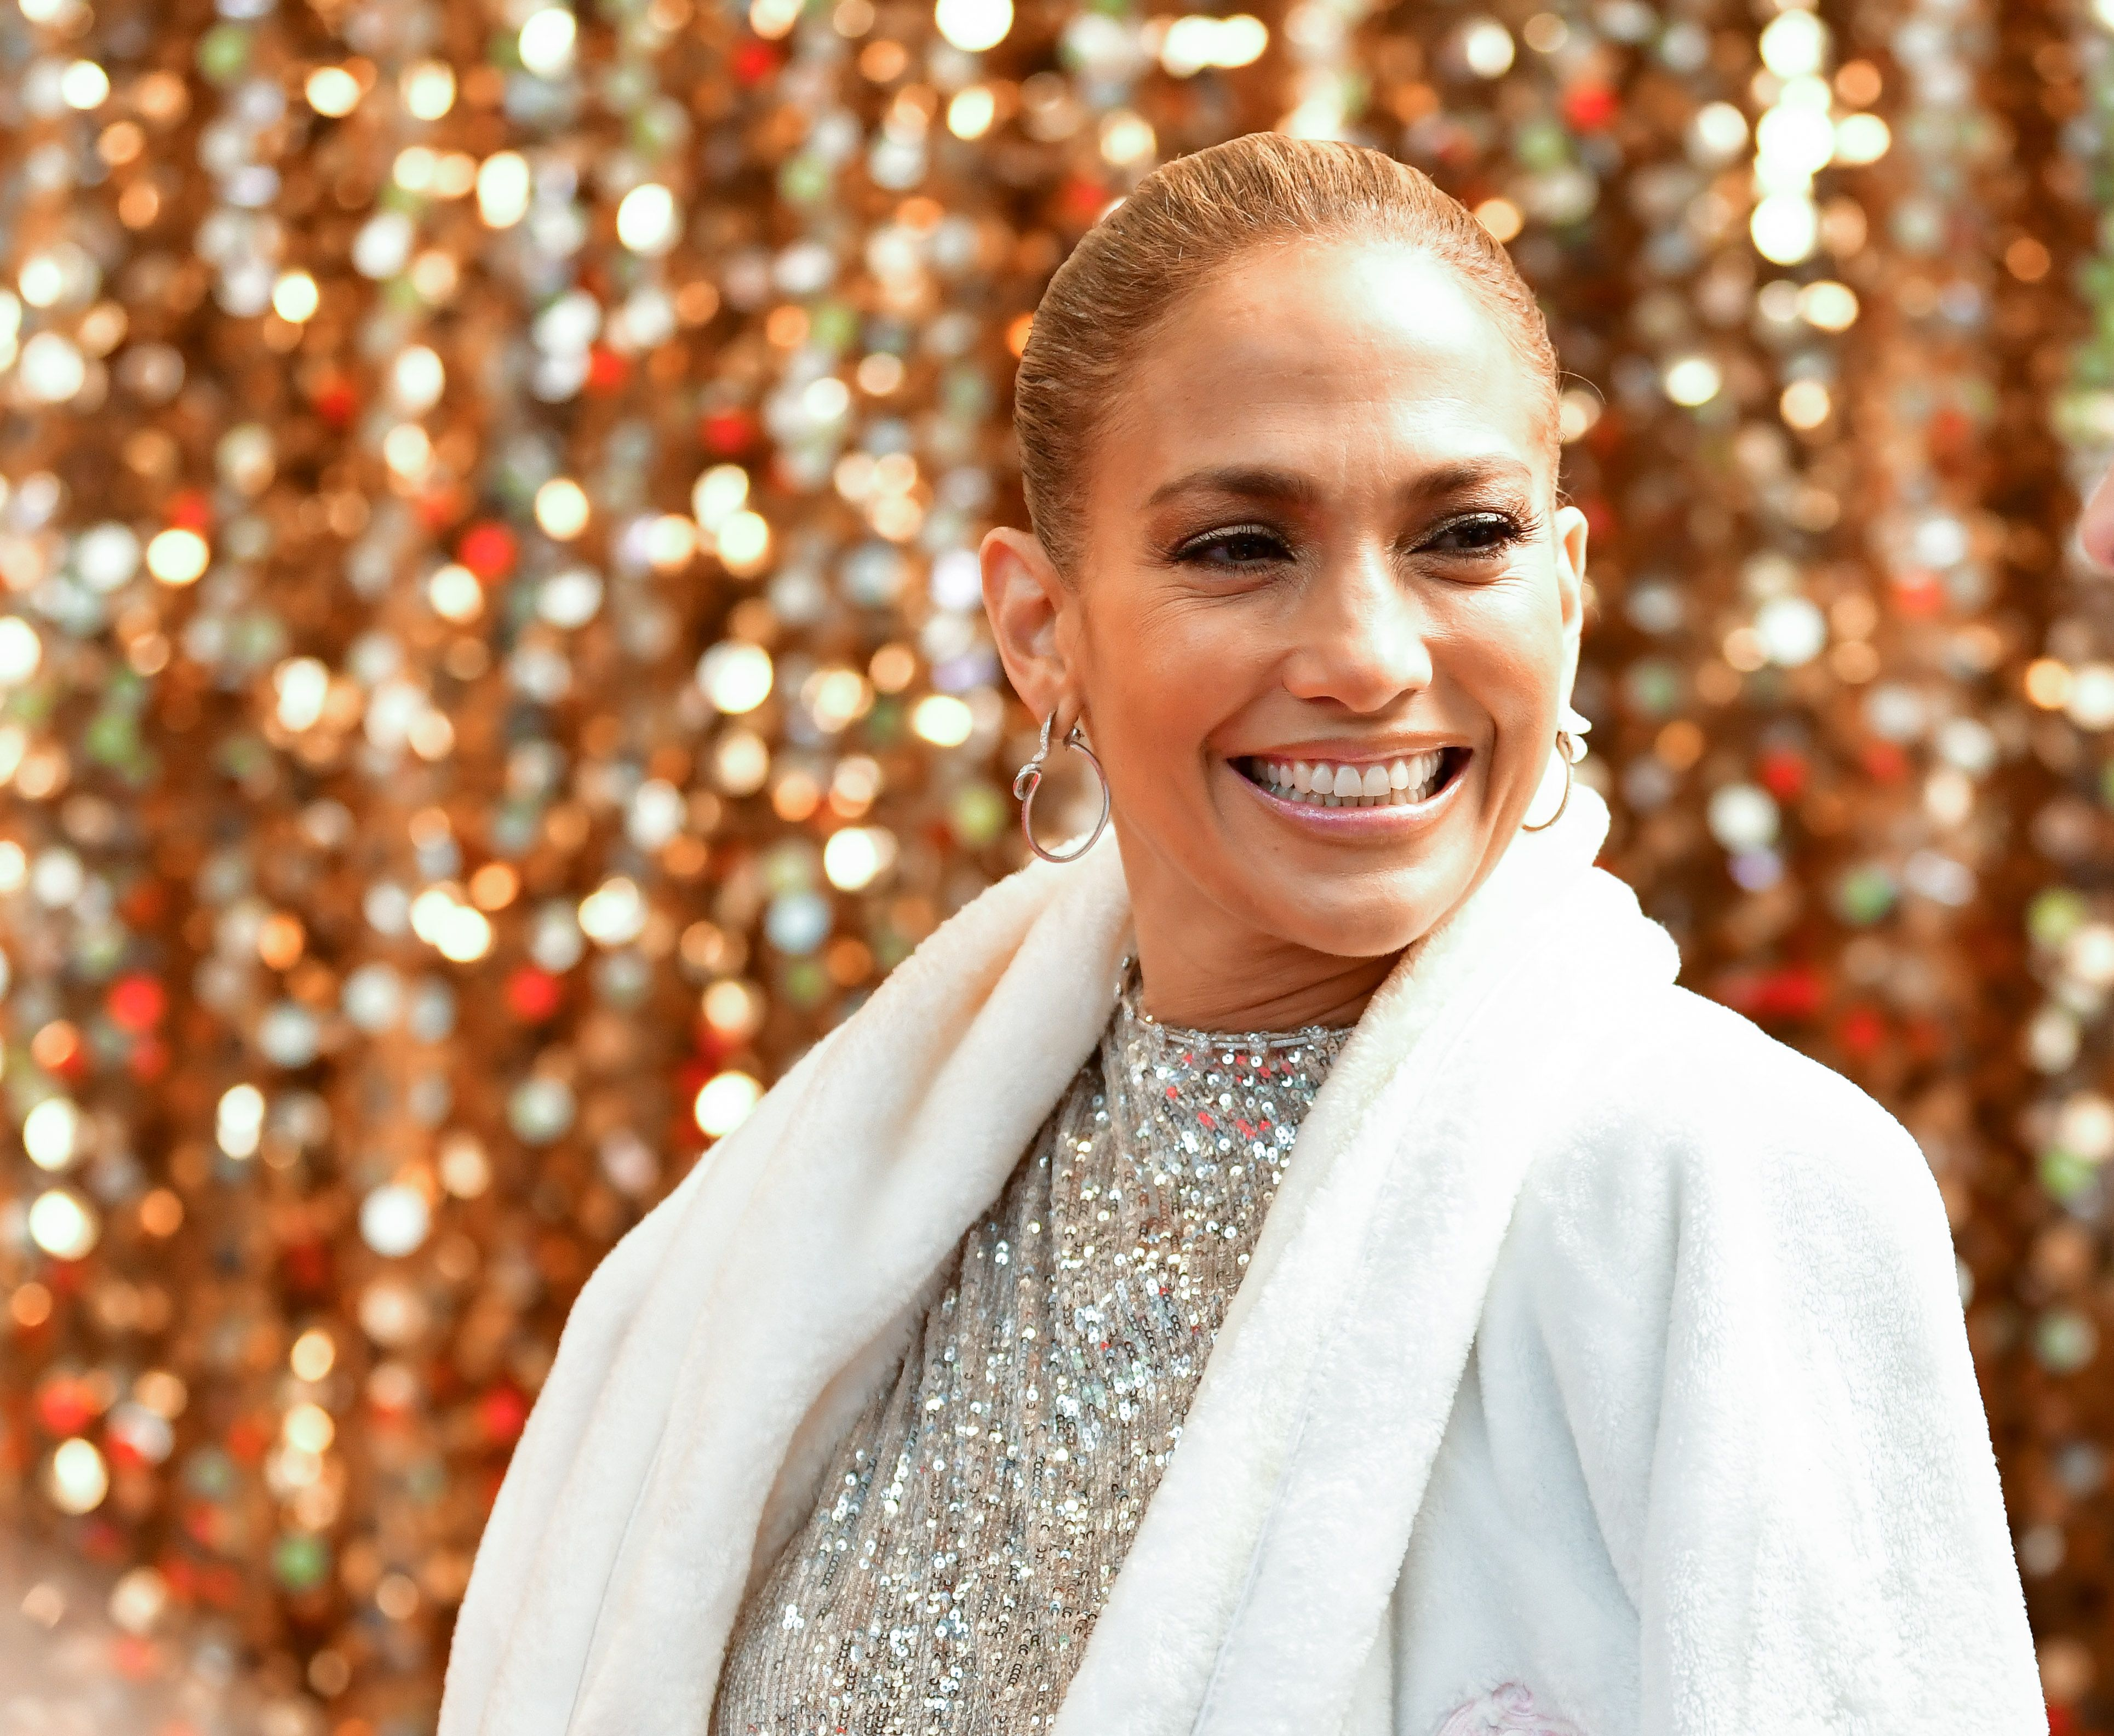 Jennifer Lopez Just Had a Major Leg Slit Moment in a Custom Michael Costello Gown